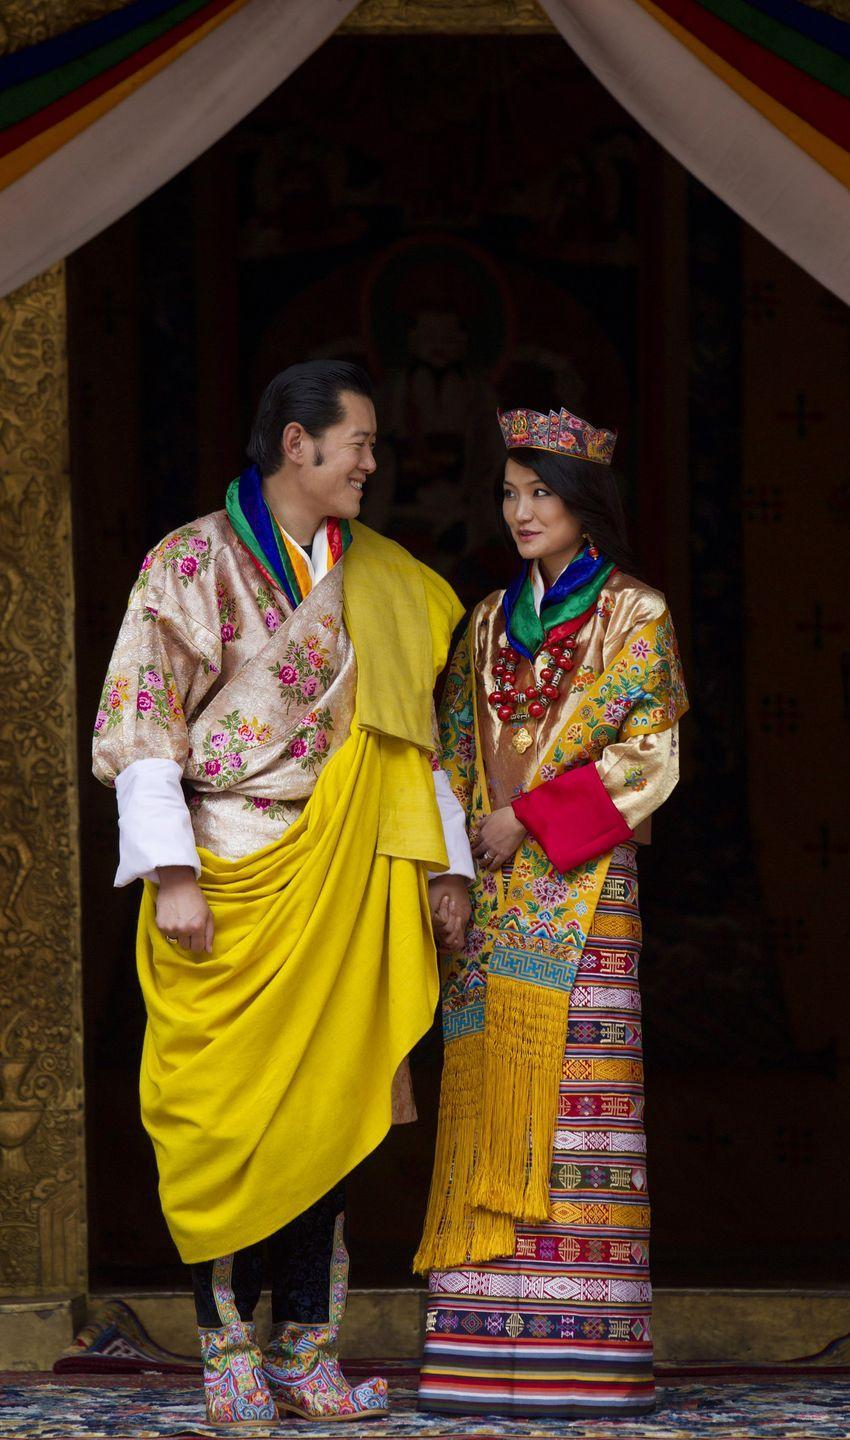 """<p>The Queen of Bhutan was married in a colorful Bhutanese kira, one of several that she wore during her <a href=""""https://www.washingtonpost.com/world/bhutans-royal-wedding/2011/10/12/gIQApfCkfL_gallery.html?utm_term=.ea52b2ff75f5"""" rel=""""nofollow noopener"""" target=""""_blank"""" data-ylk=""""slk:three day wedding celebration"""" class=""""link rapid-noclick-resp"""">three day wedding celebration</a>.</p>"""